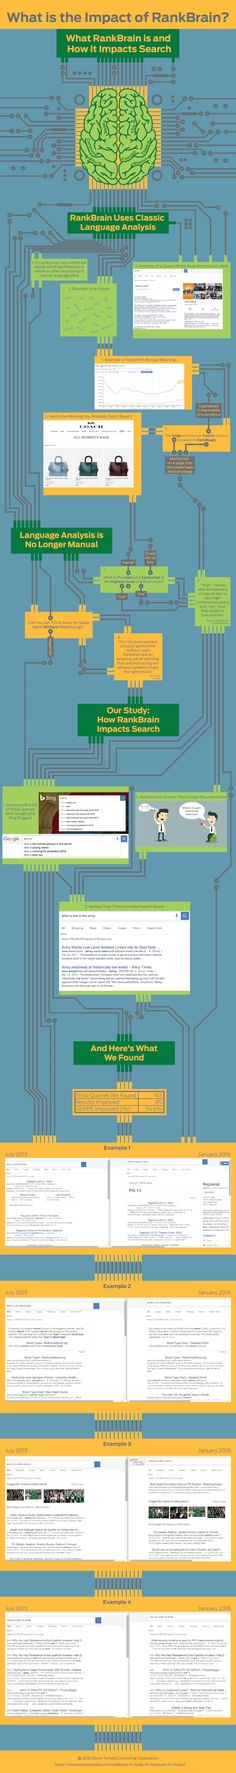 Infographic: How Google RankBrain works and how it affects search results.